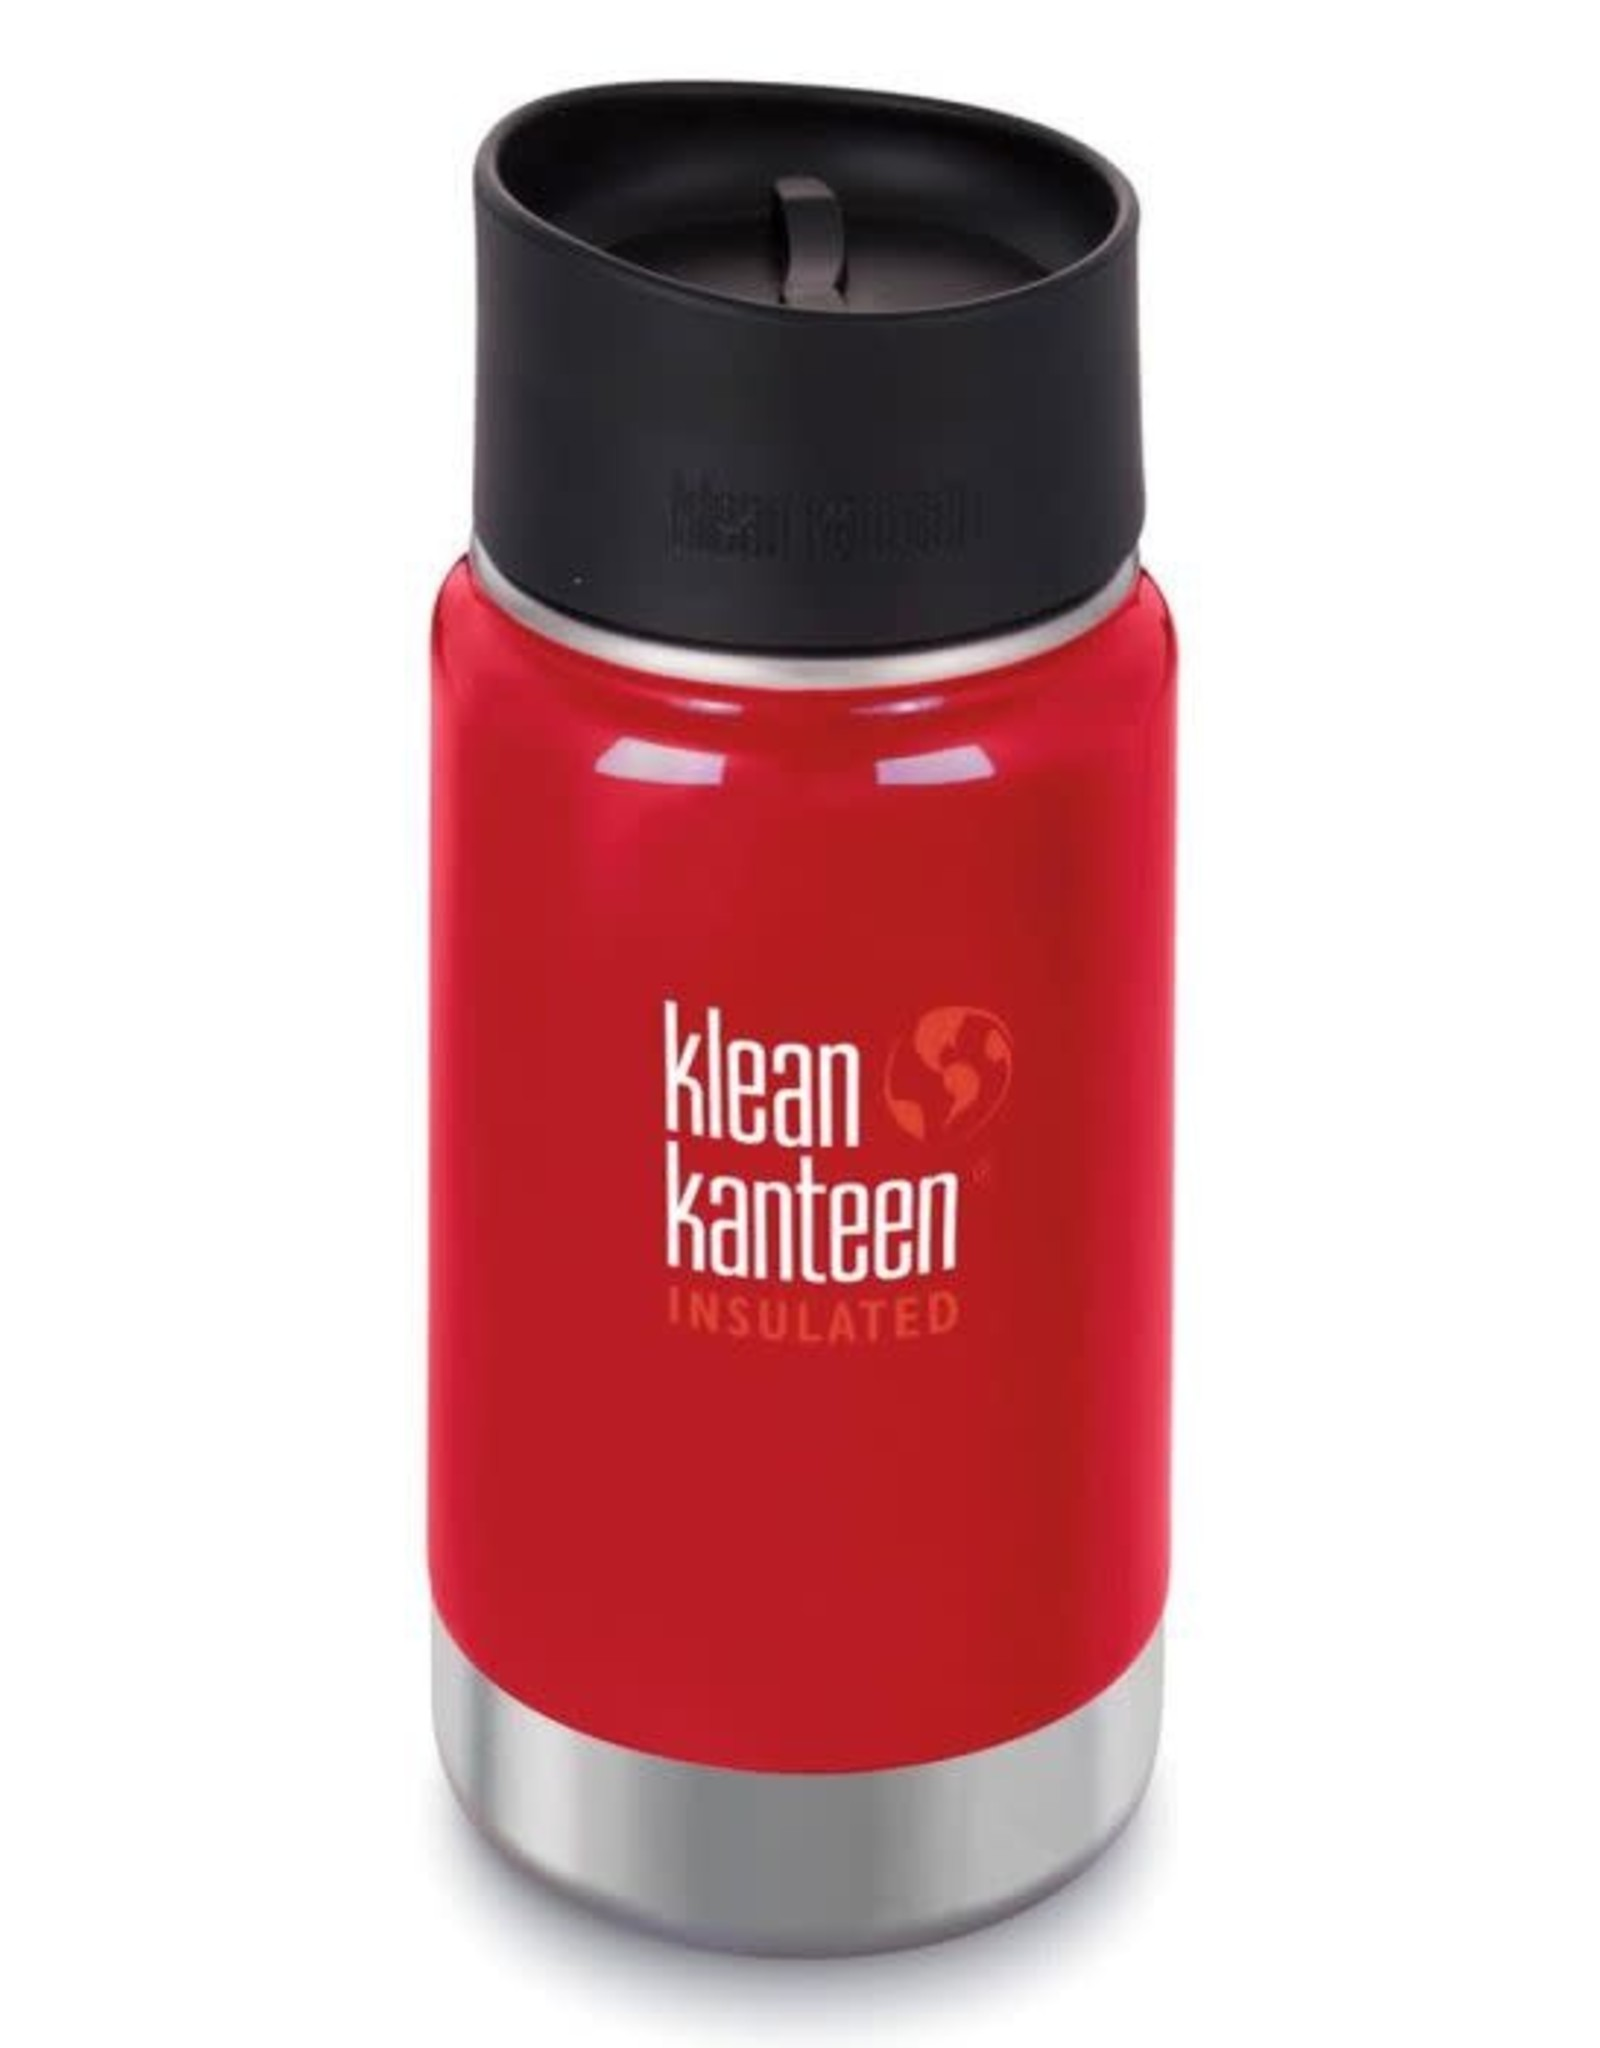 klean kanteen 12 oz Thermosfles - Mineral Red 355ml